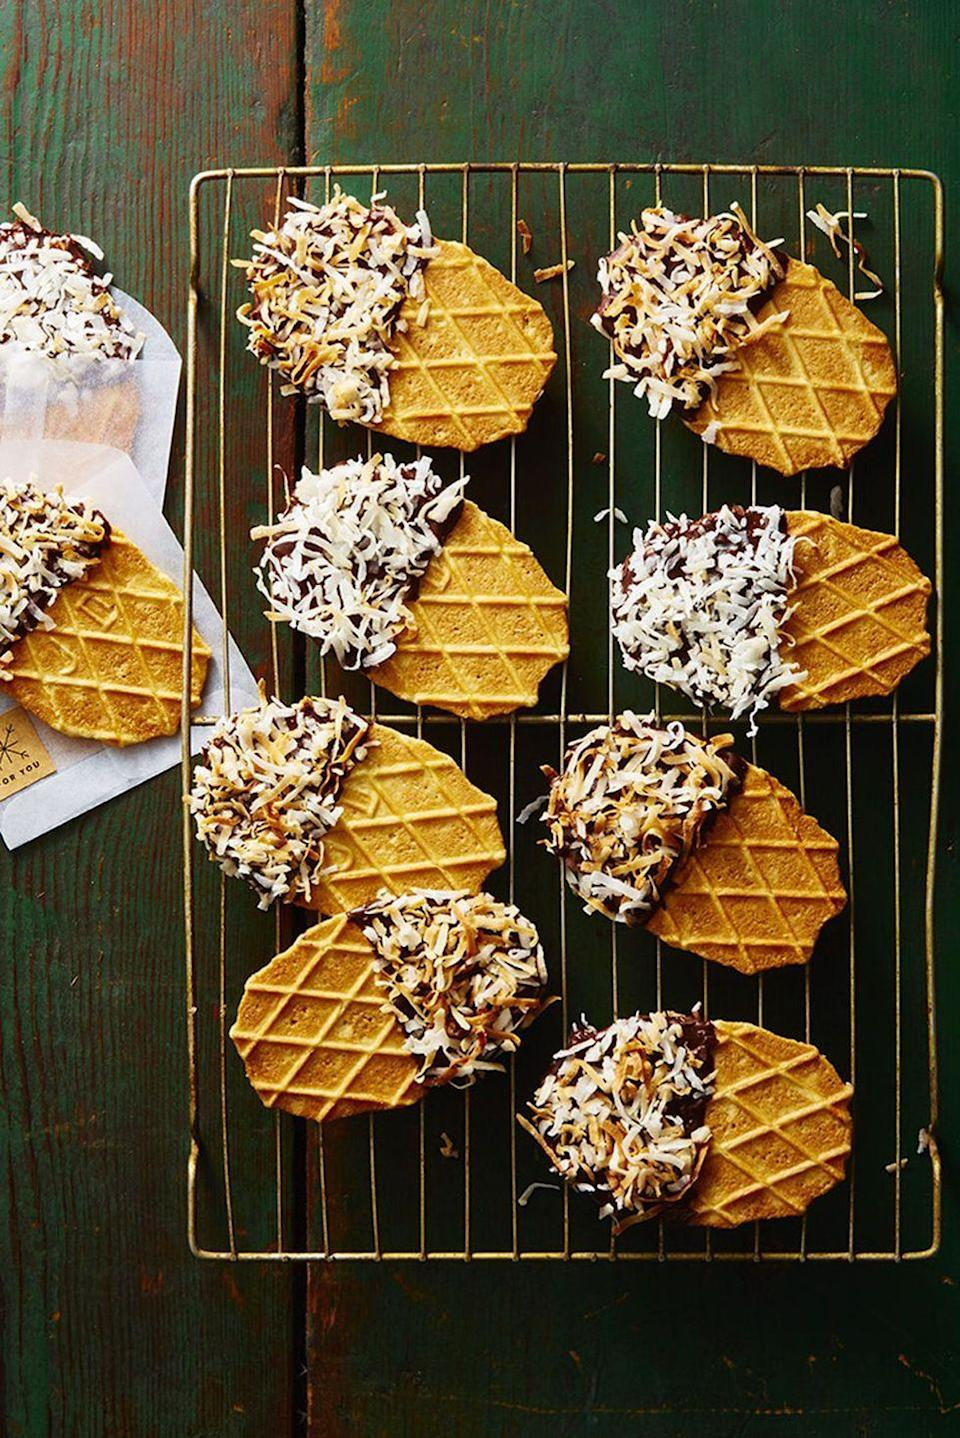 """<p>Dip store-bought waffle cookies in melted chocolate, then top with shredded coconut. You're welcome. </p><p><em><a href=""""https://www.goodhousekeeping.com/food-recipes/dessert/a46922/no-bake-waffle-dippers-recipe/"""" rel=""""nofollow noopener"""" target=""""_blank"""" data-ylk=""""slk:Get the recipe for Waffle Dippers »"""" class=""""link rapid-noclick-resp"""">Get the recipe for Waffle Dippers »</a></em><br></p>"""